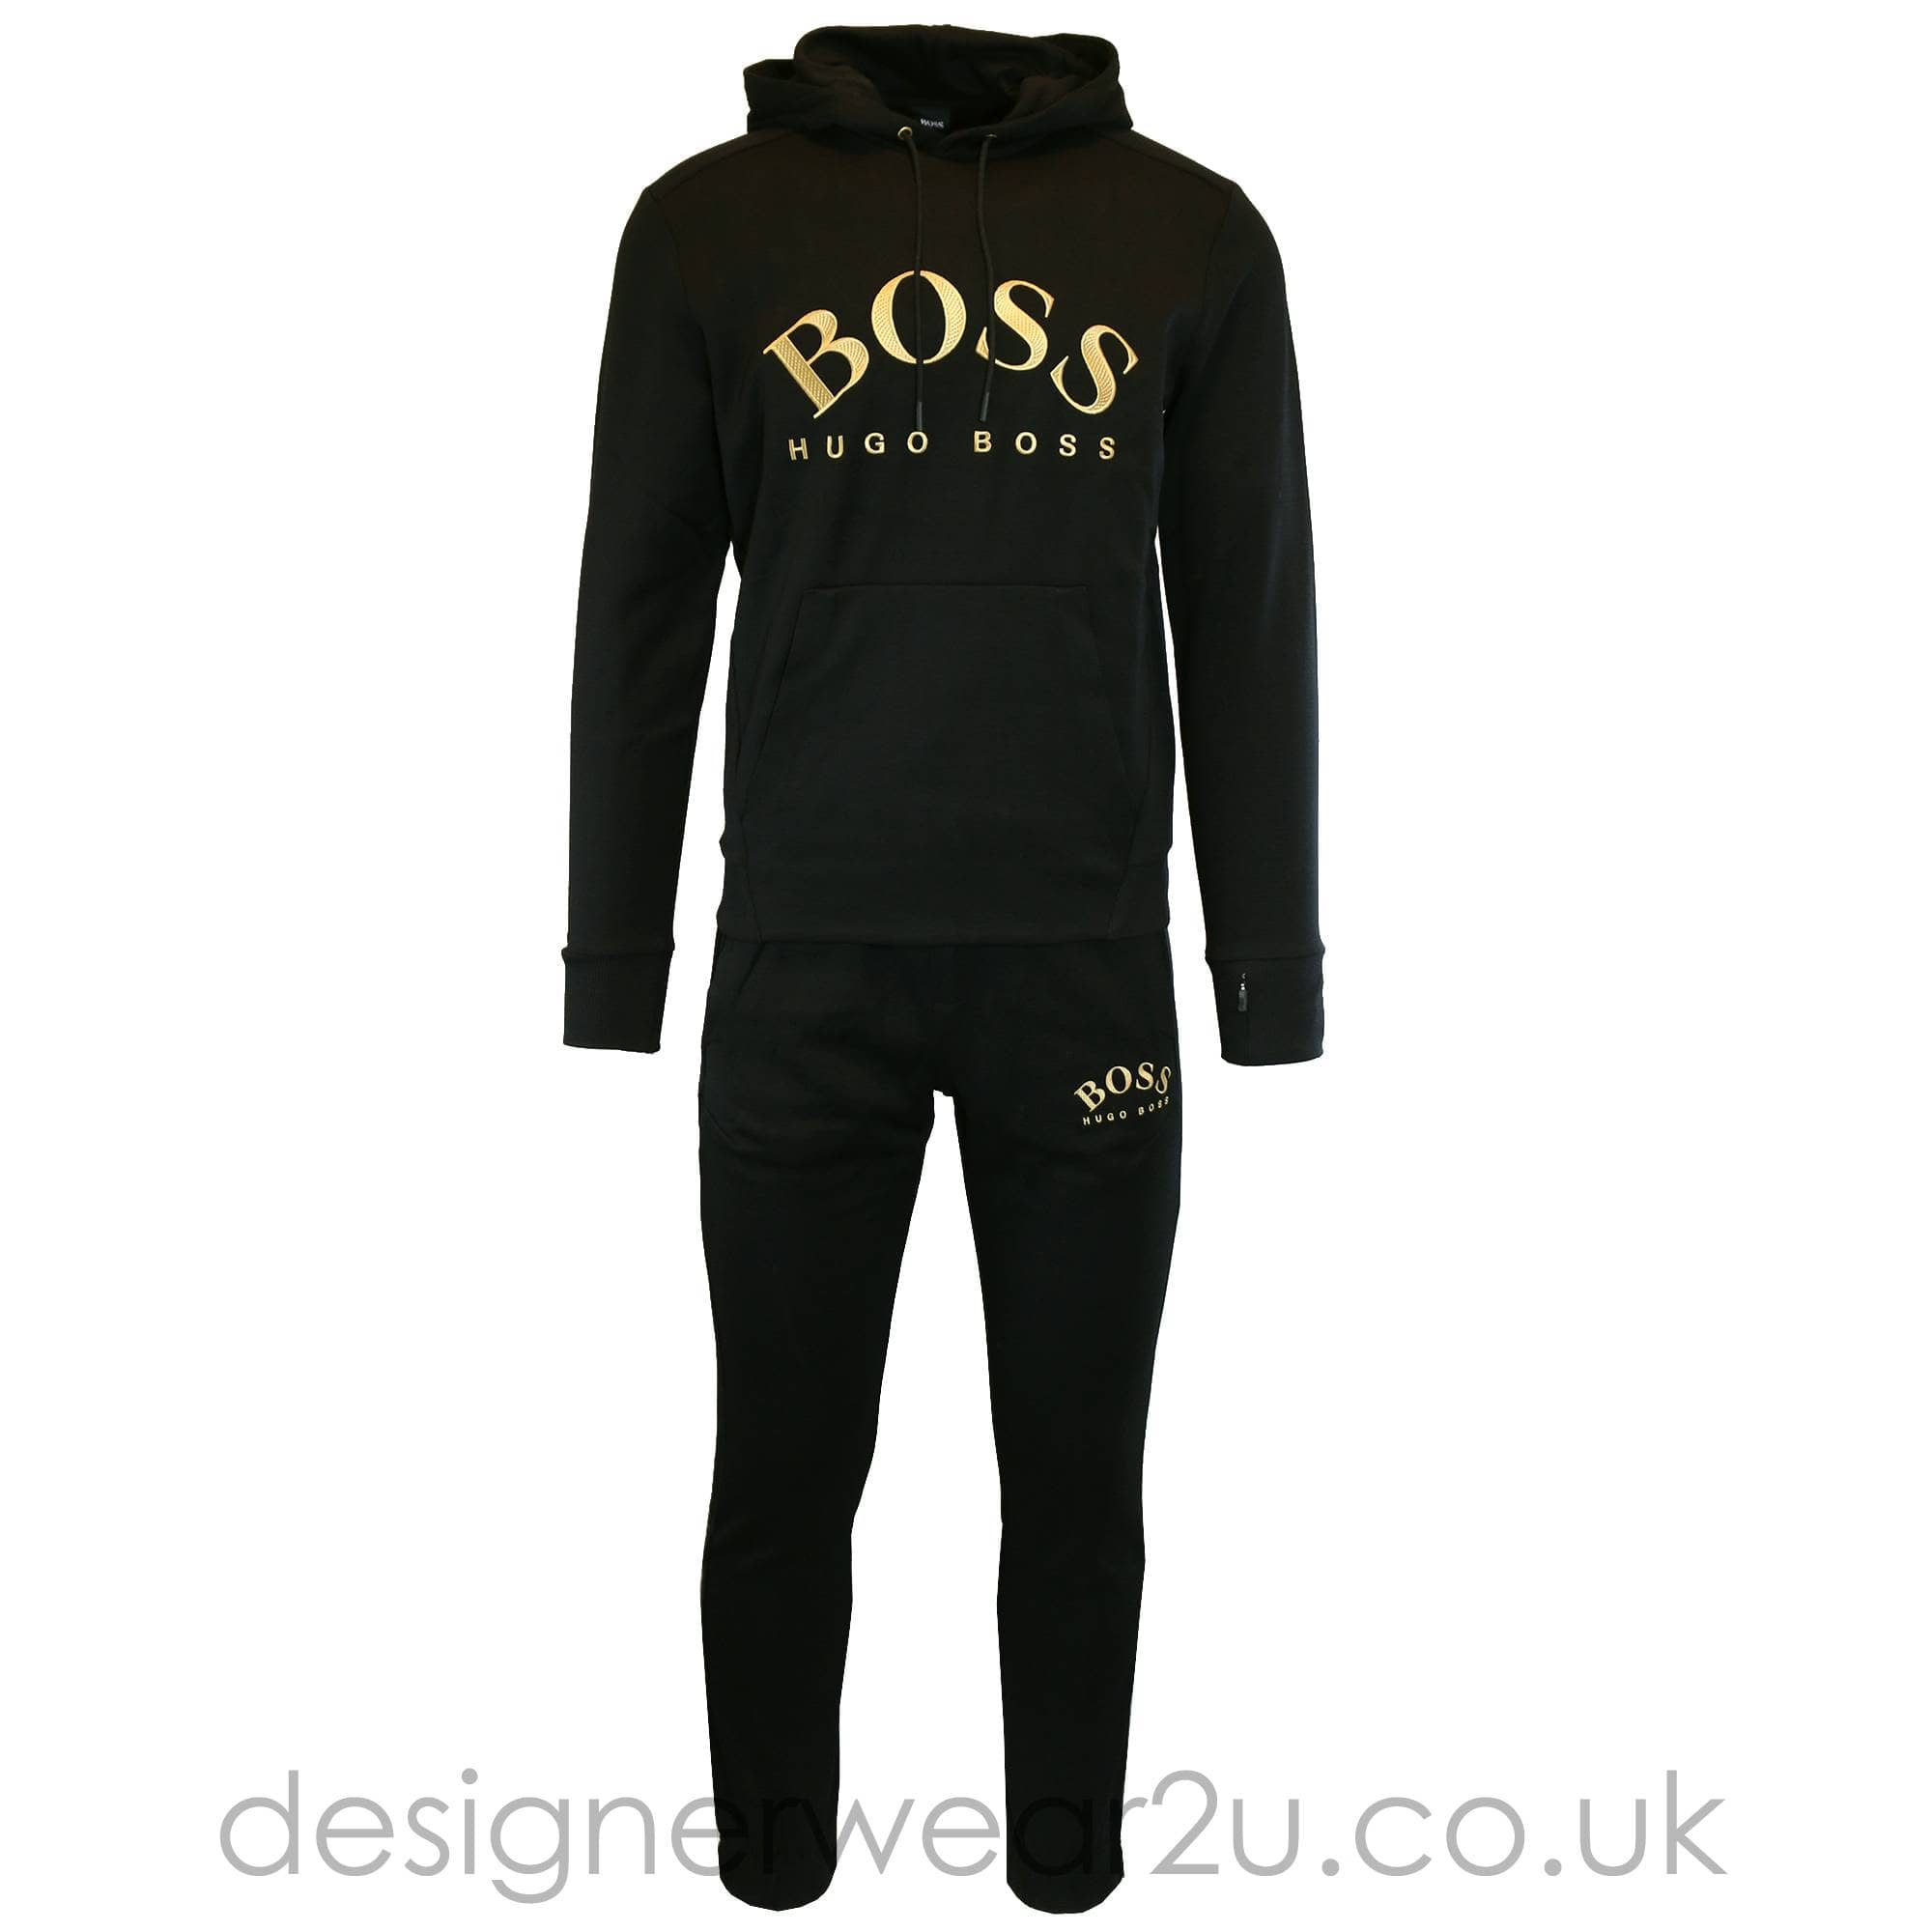 black and gold hugo boss shorts